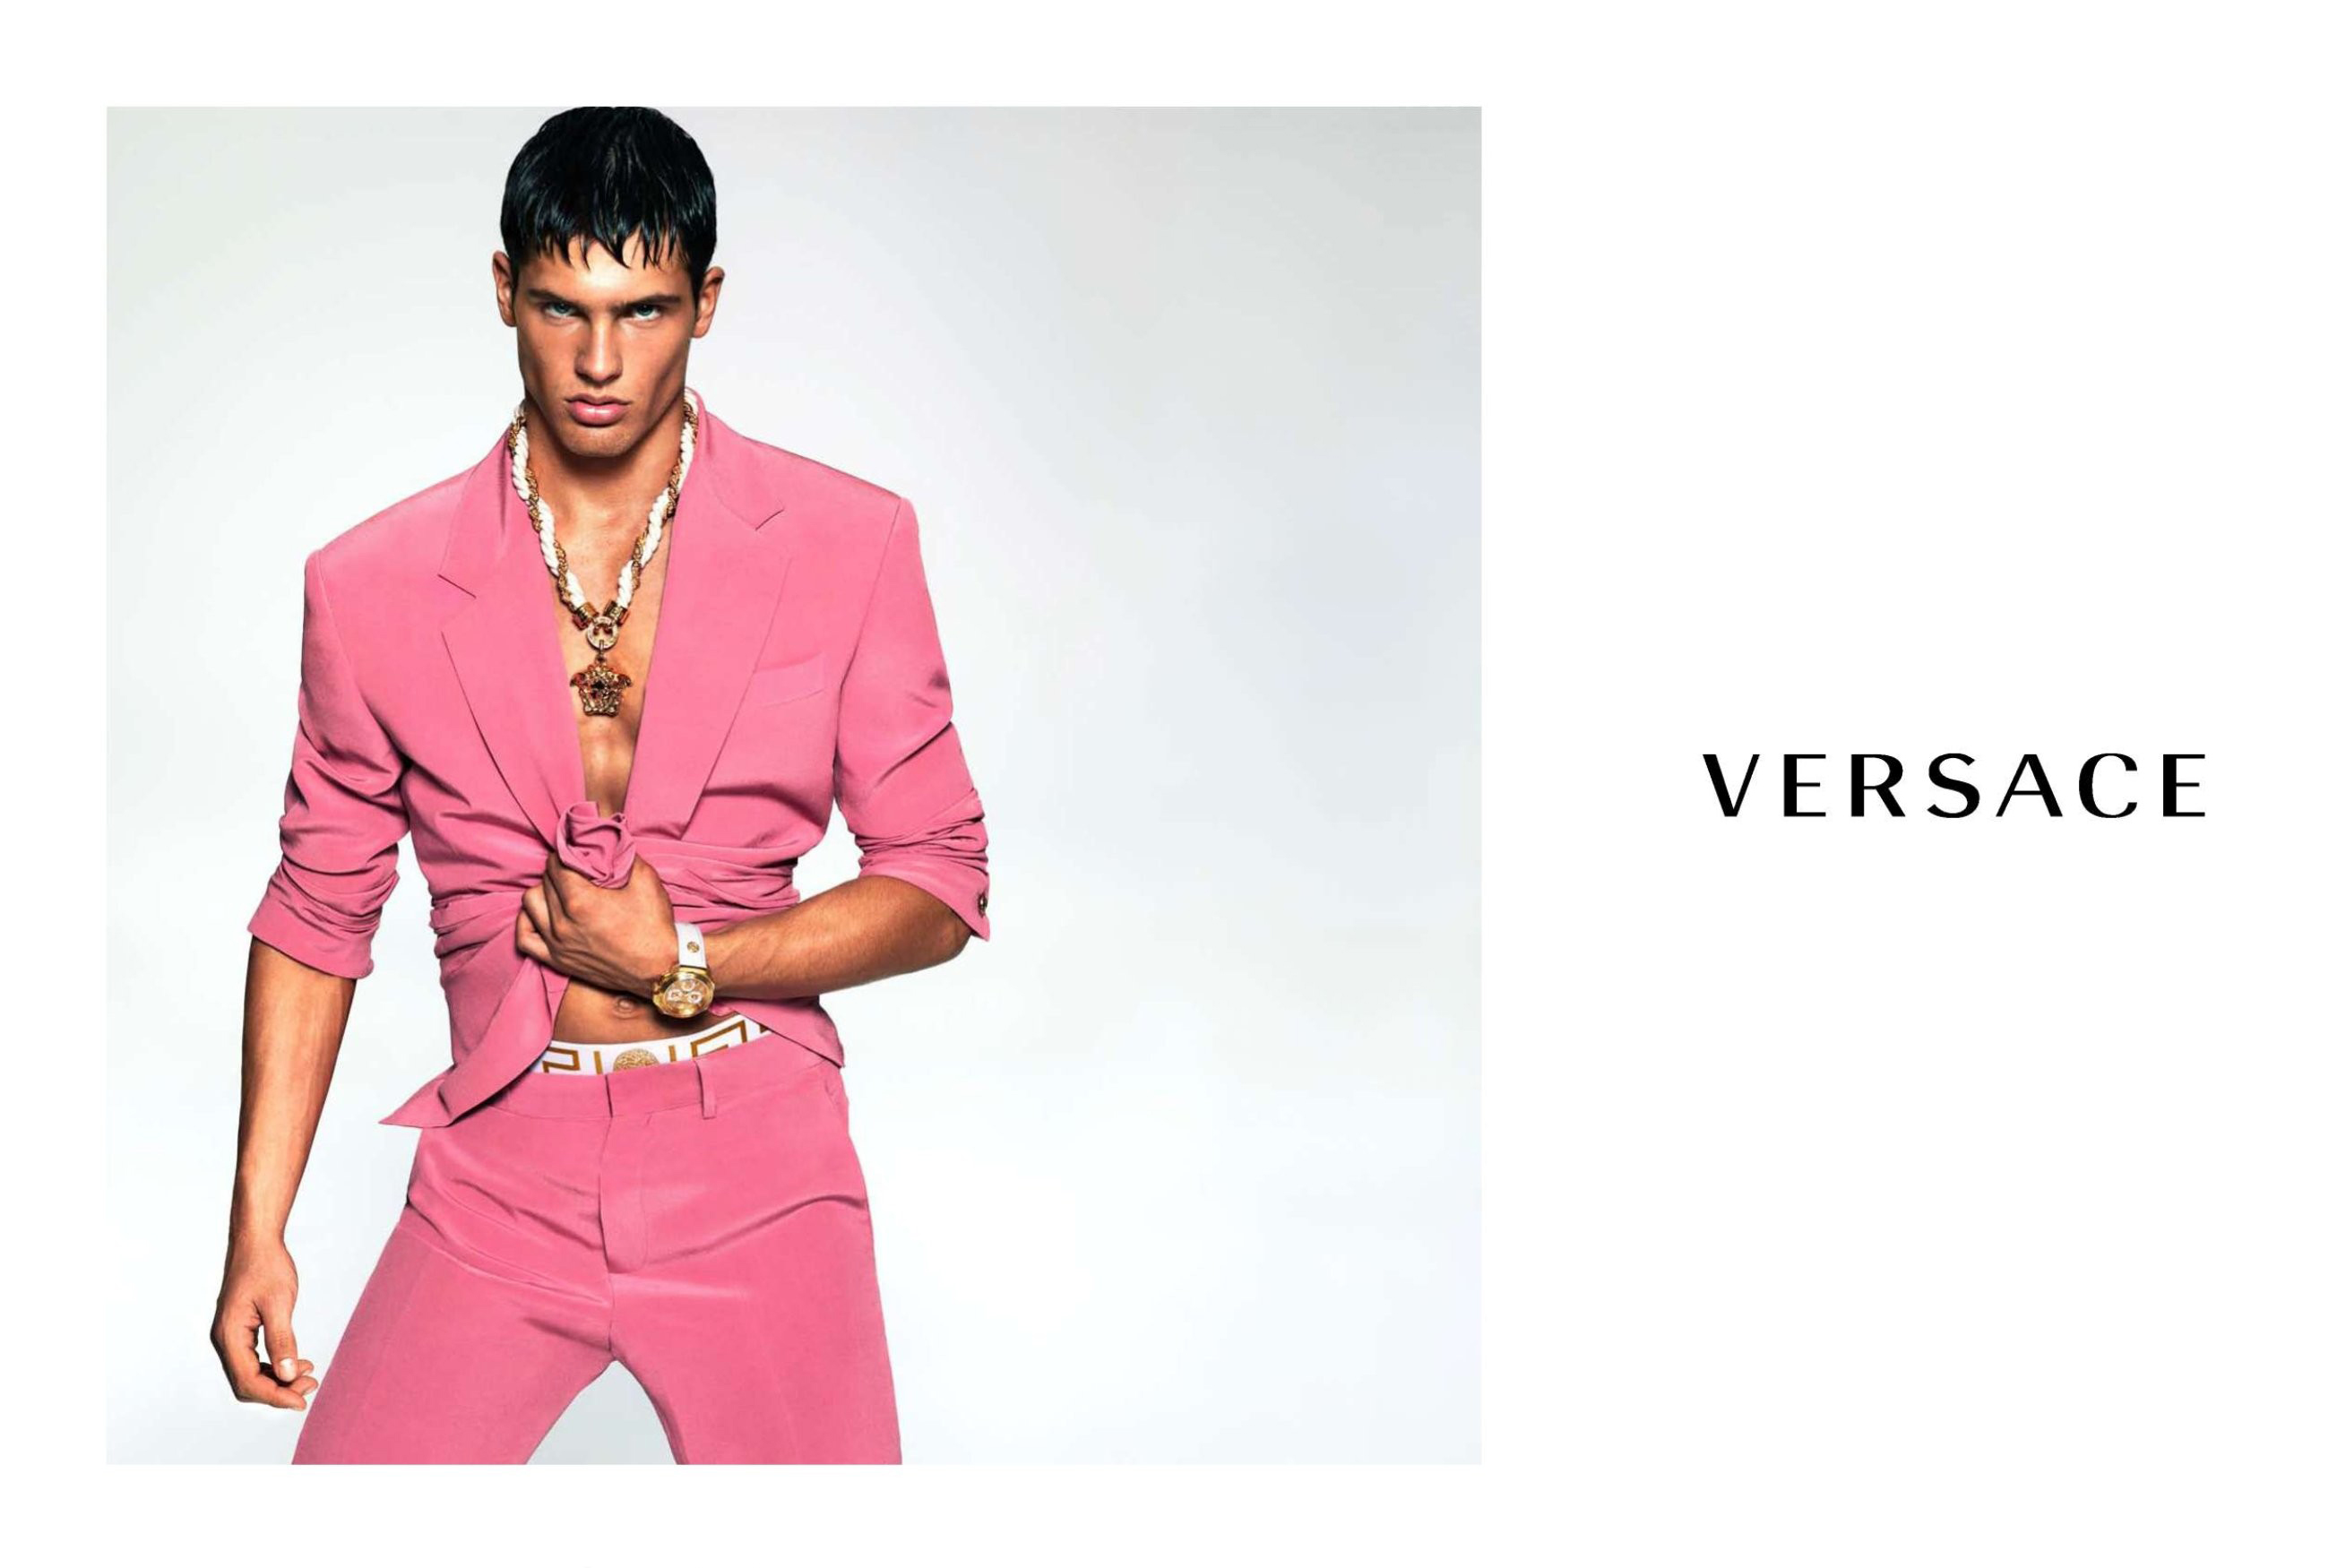 Versace Spring 2015 Ad Campaign Highlights Bright Colored Suits